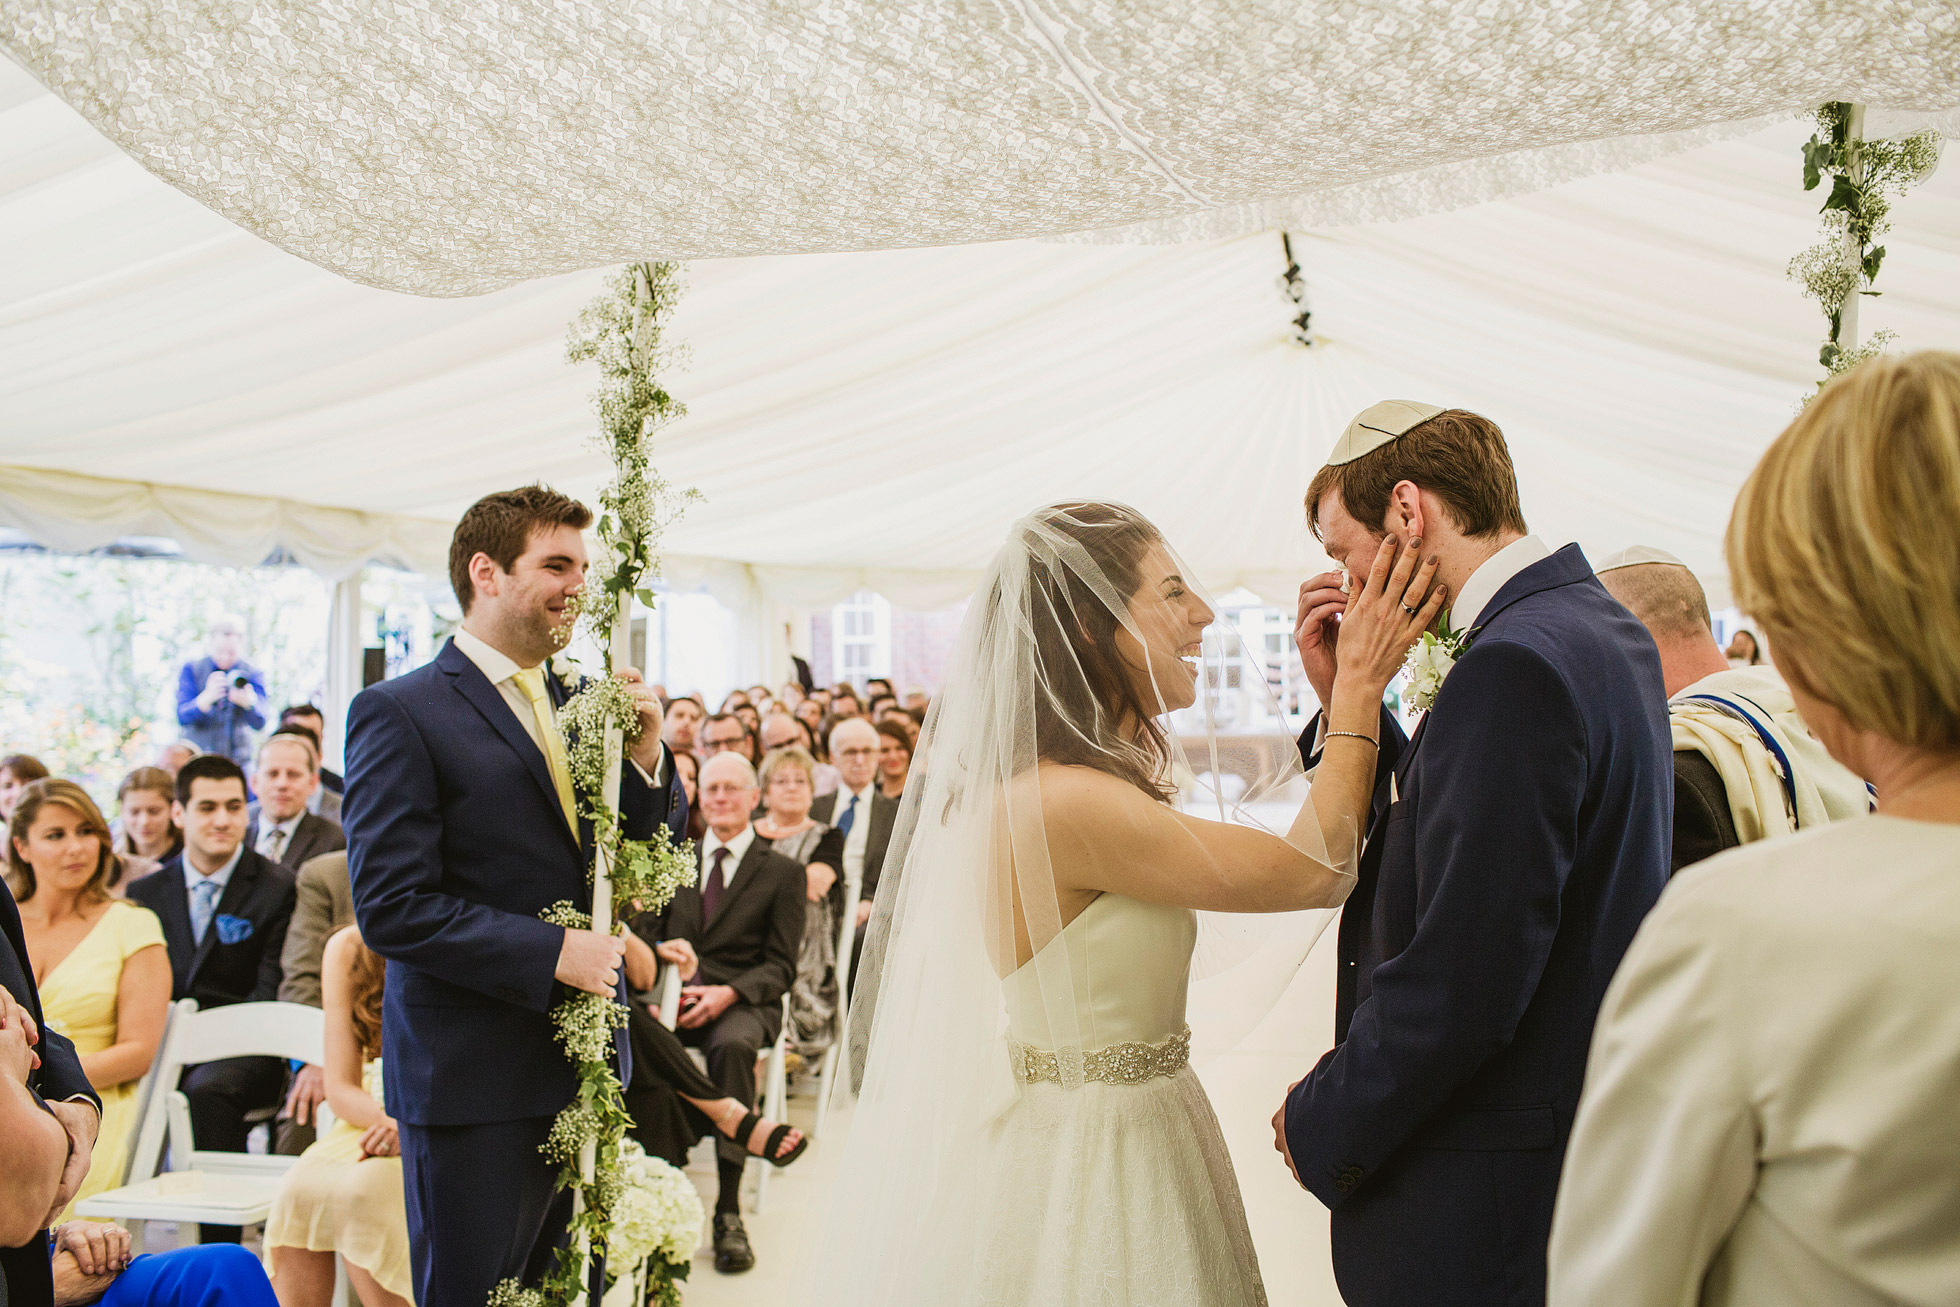 Jewish Wedding Photography and Filming London